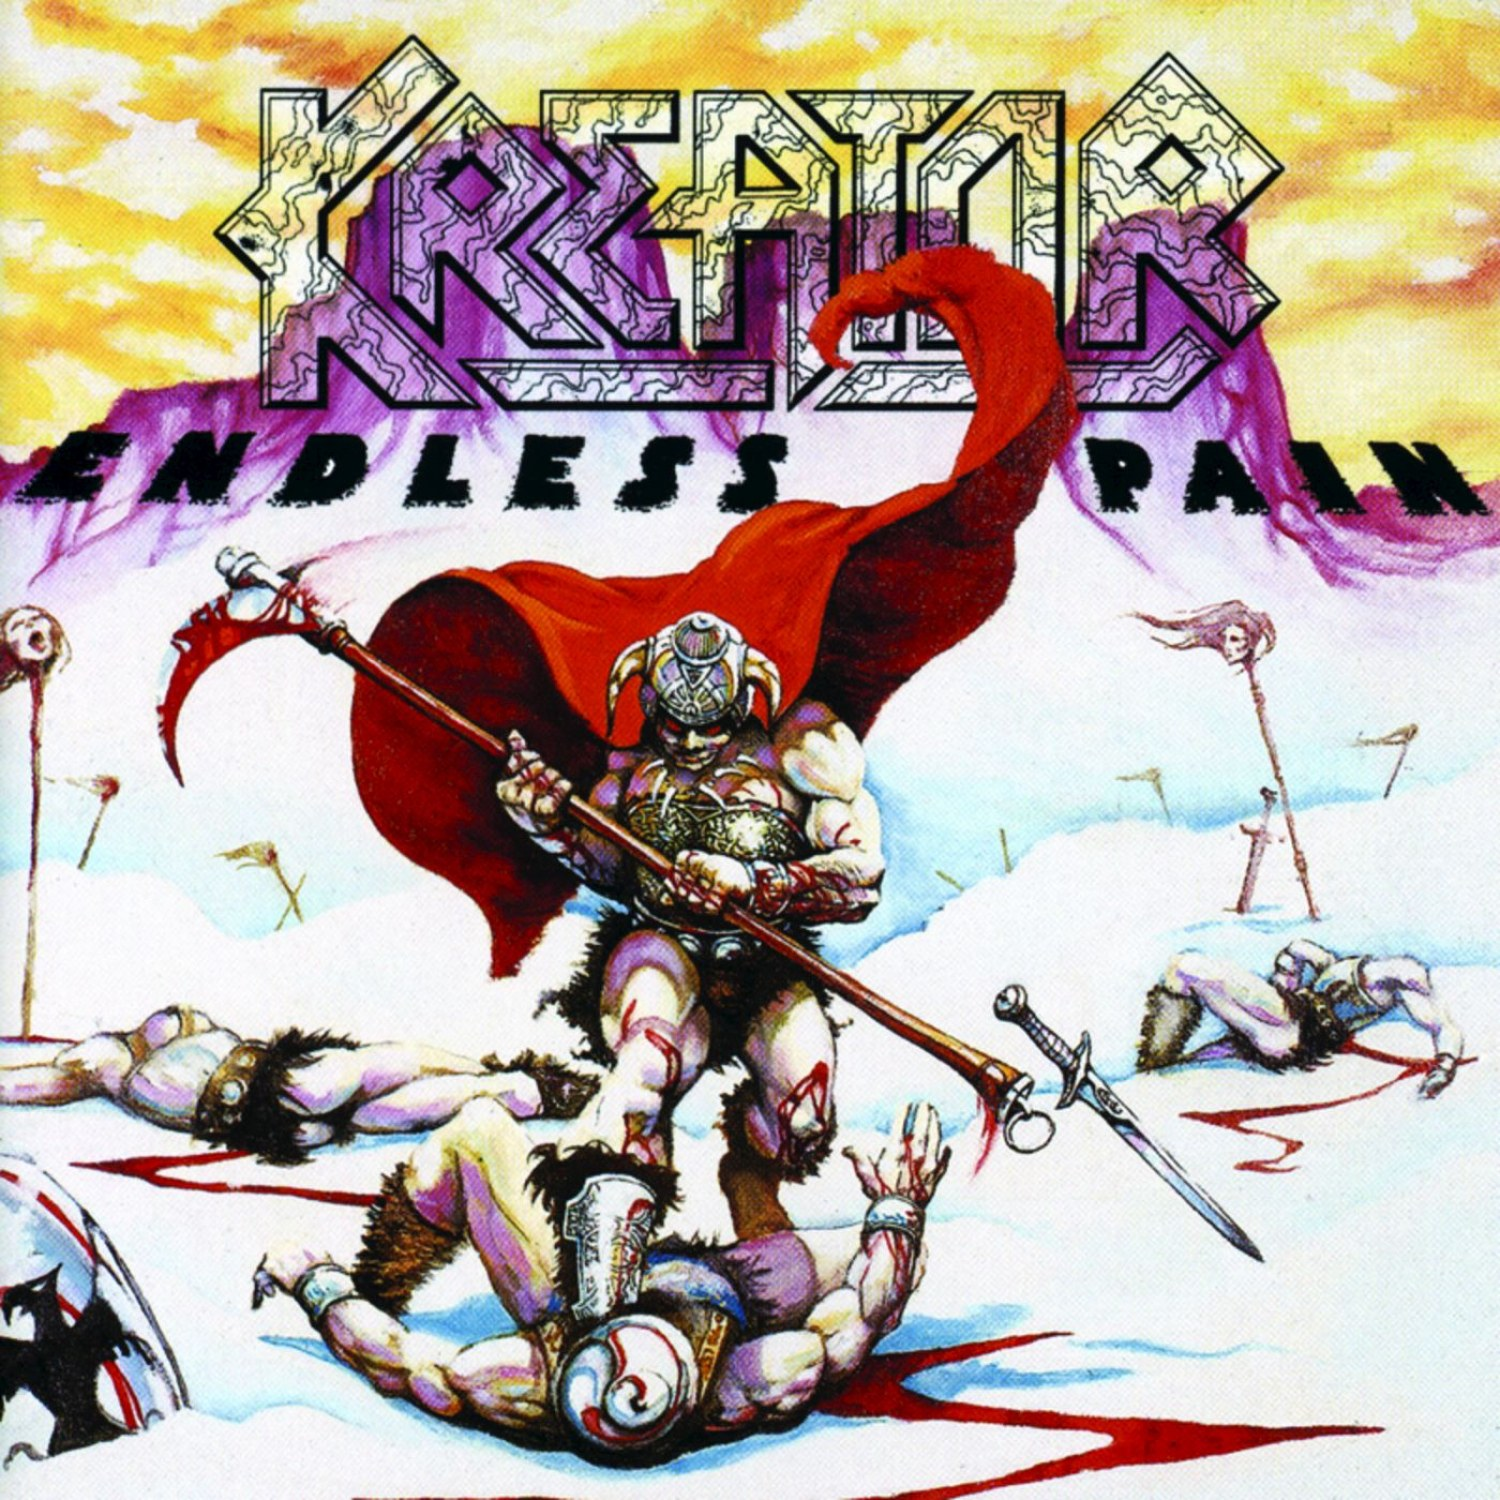 Review for Kreator - Endless Pain